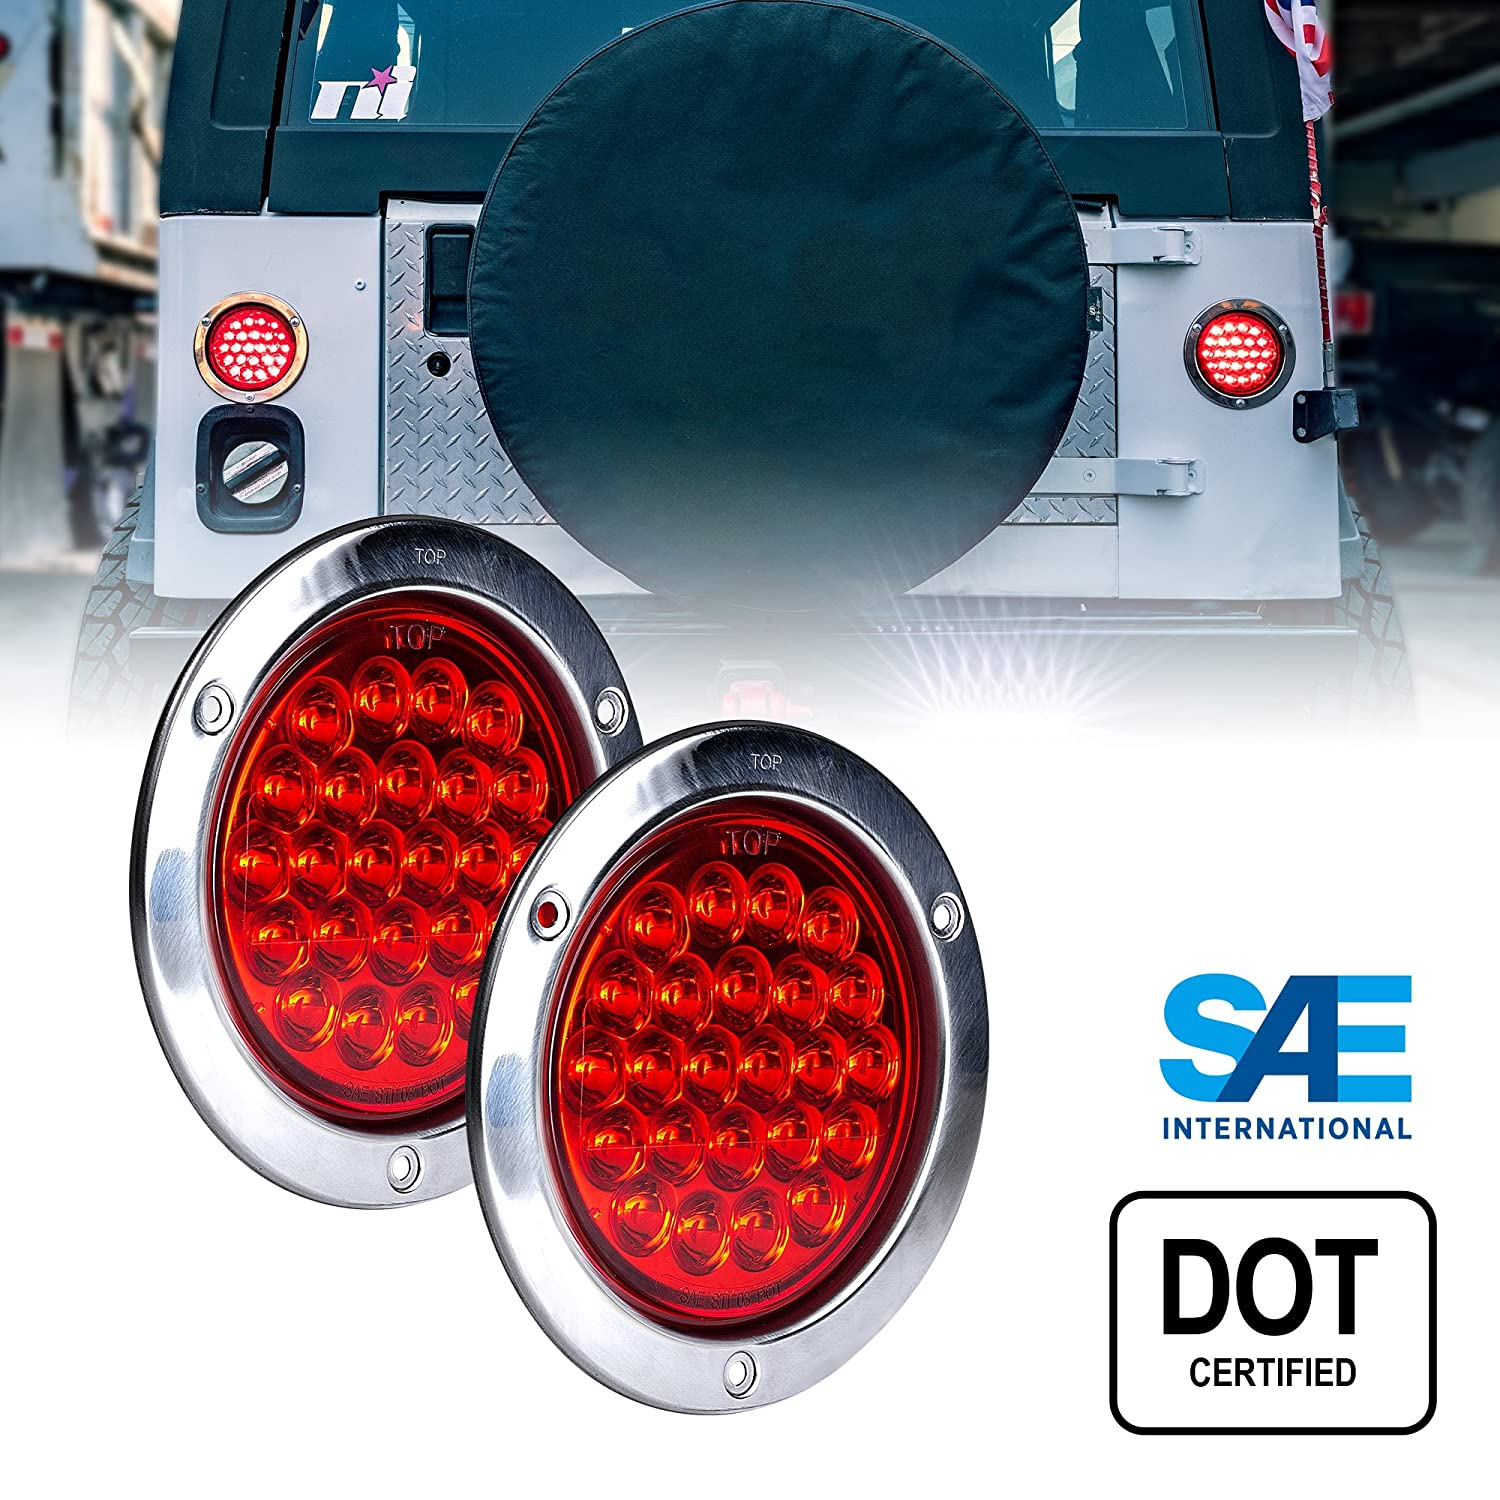 Online Led Store 2pc 4 Inch Round Trailer Tail Check For 12v At The Lg Wire Stoplamp Switch On Brake Pedal Lights Dot Certified Stainless Steel Chrome Bezel Connector Plug Included Stop